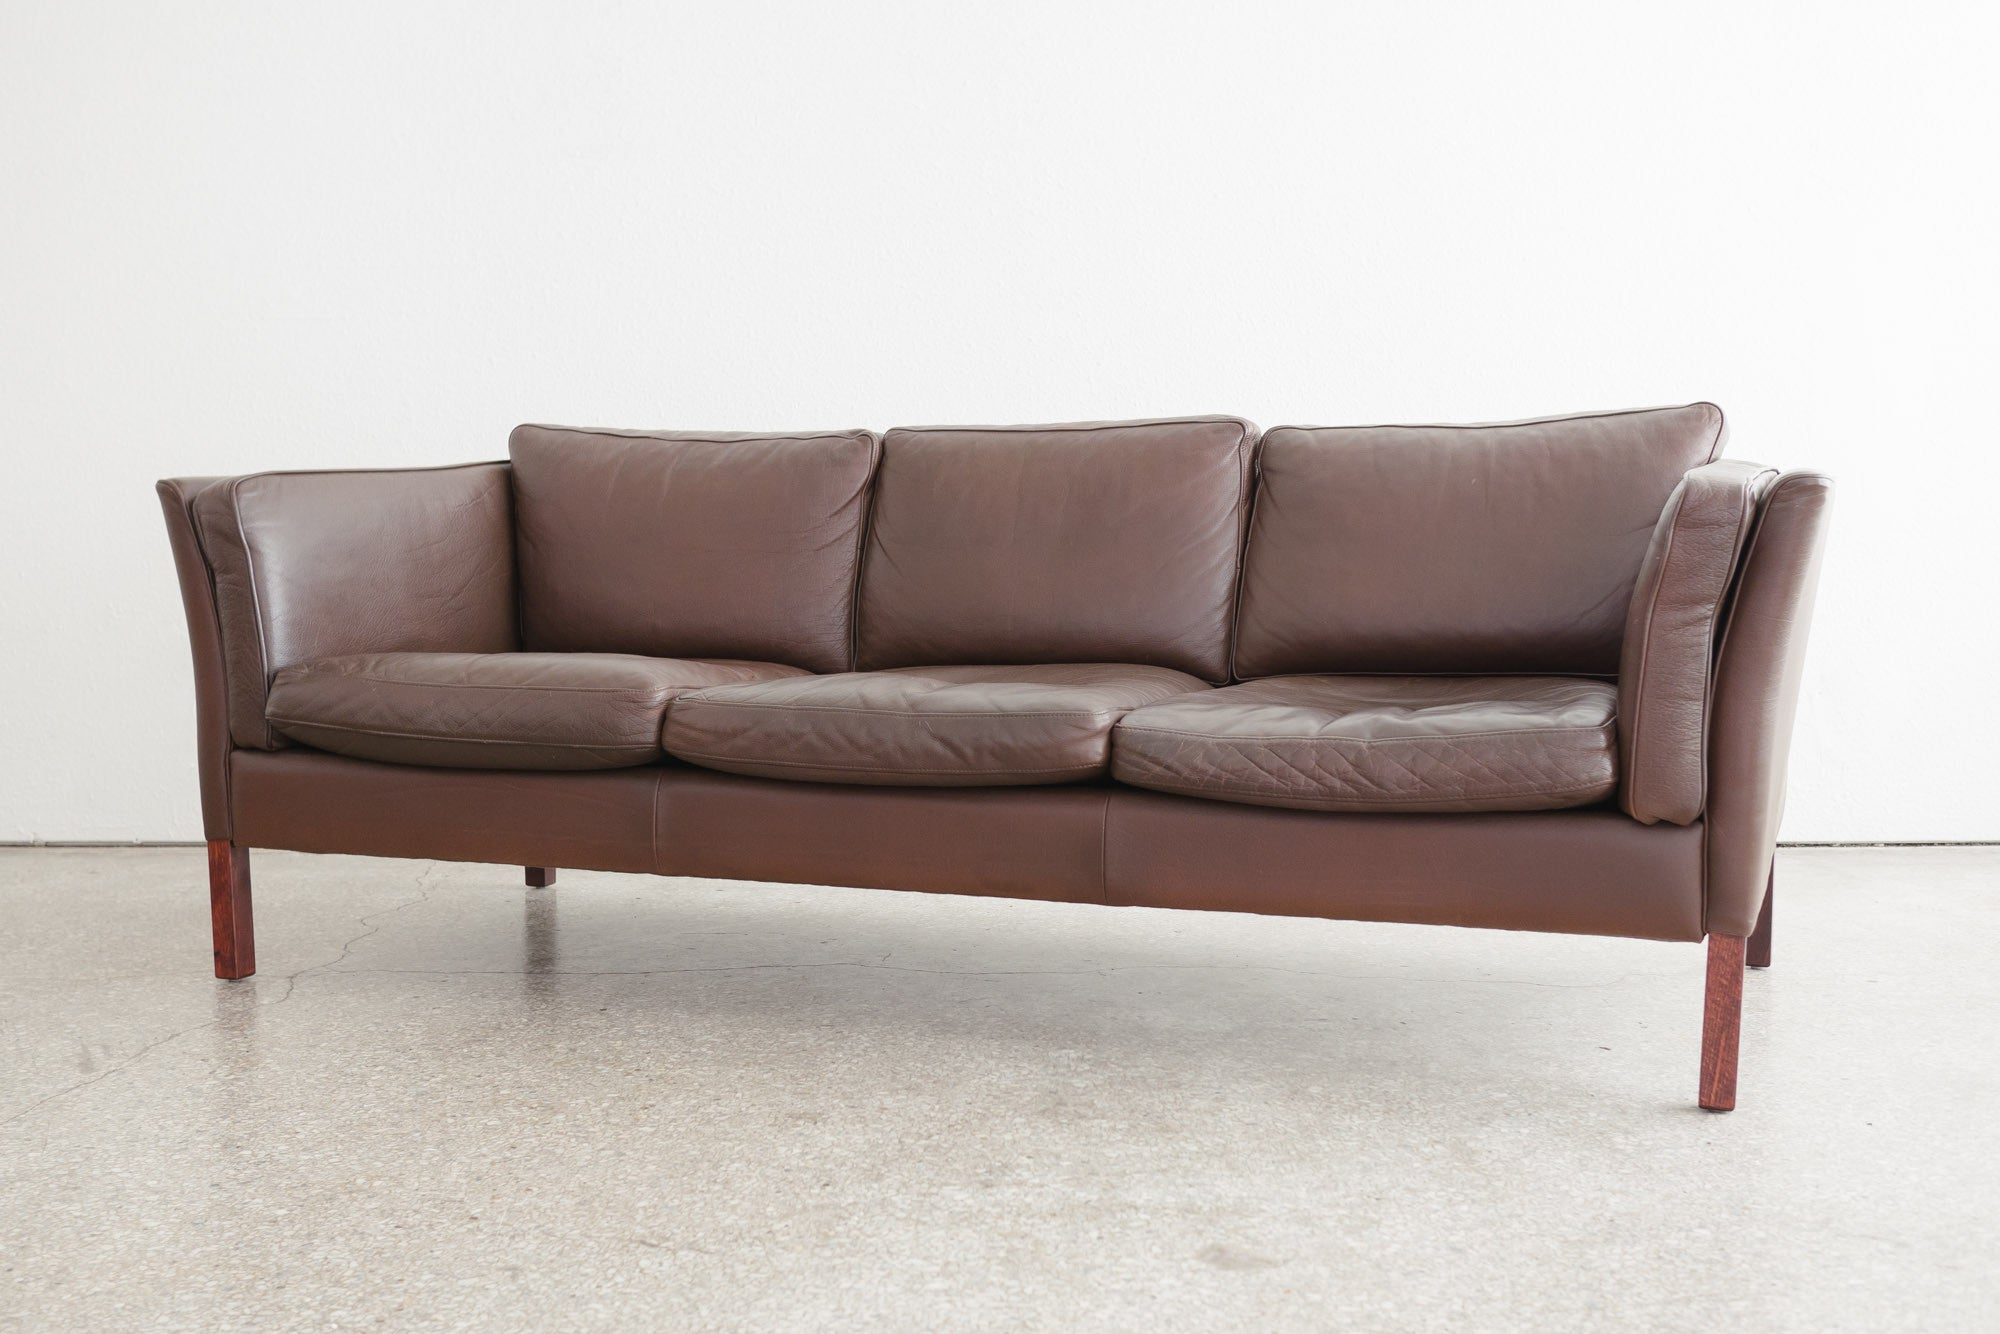 stouby sofa Danish Leather Stouby Sofa   Homestead Seattle stouby sofa